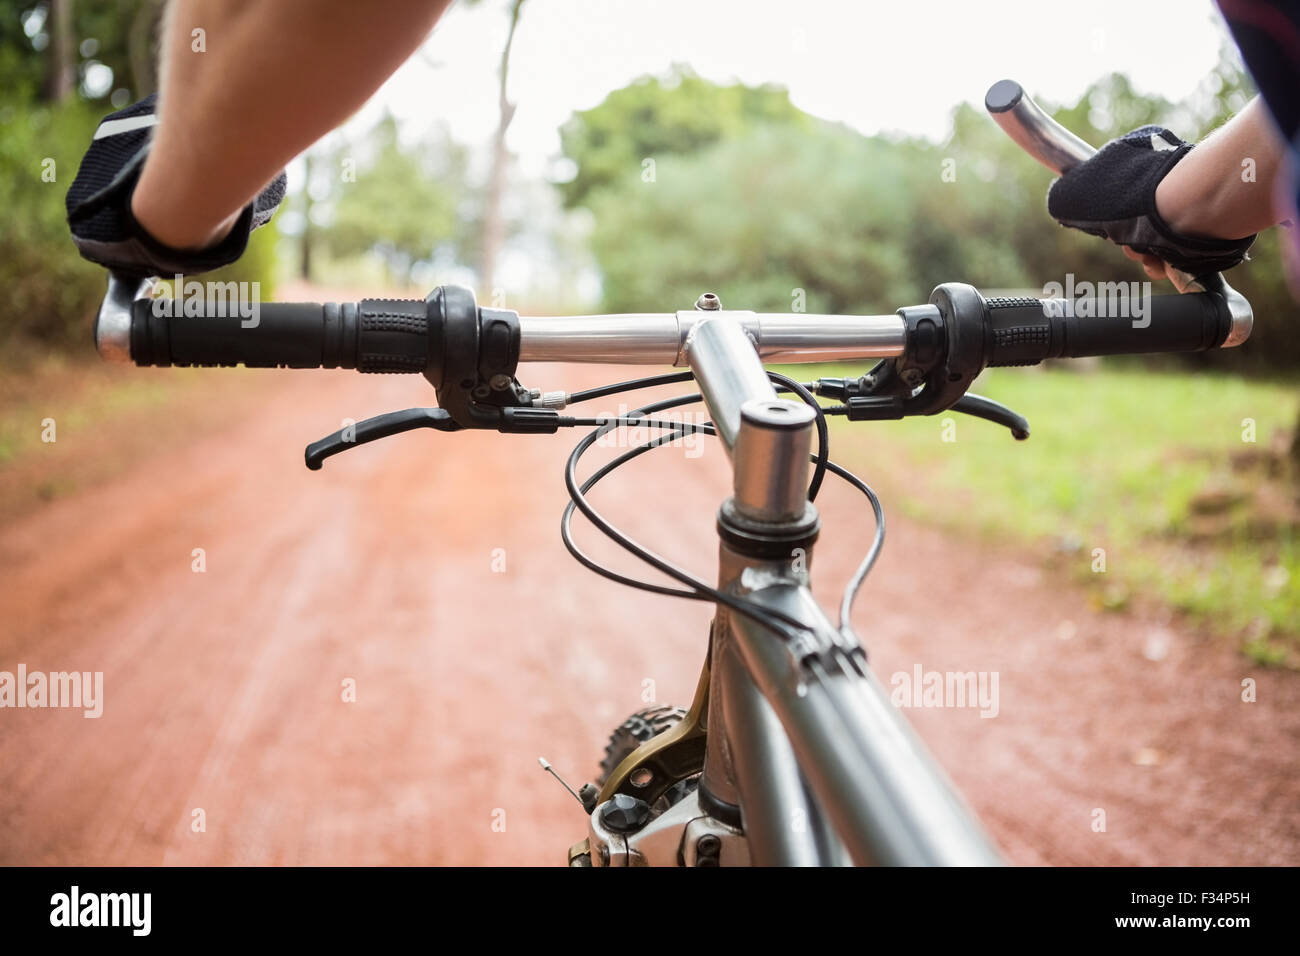 Woman mountain biking and holding handlebars - Stock Image